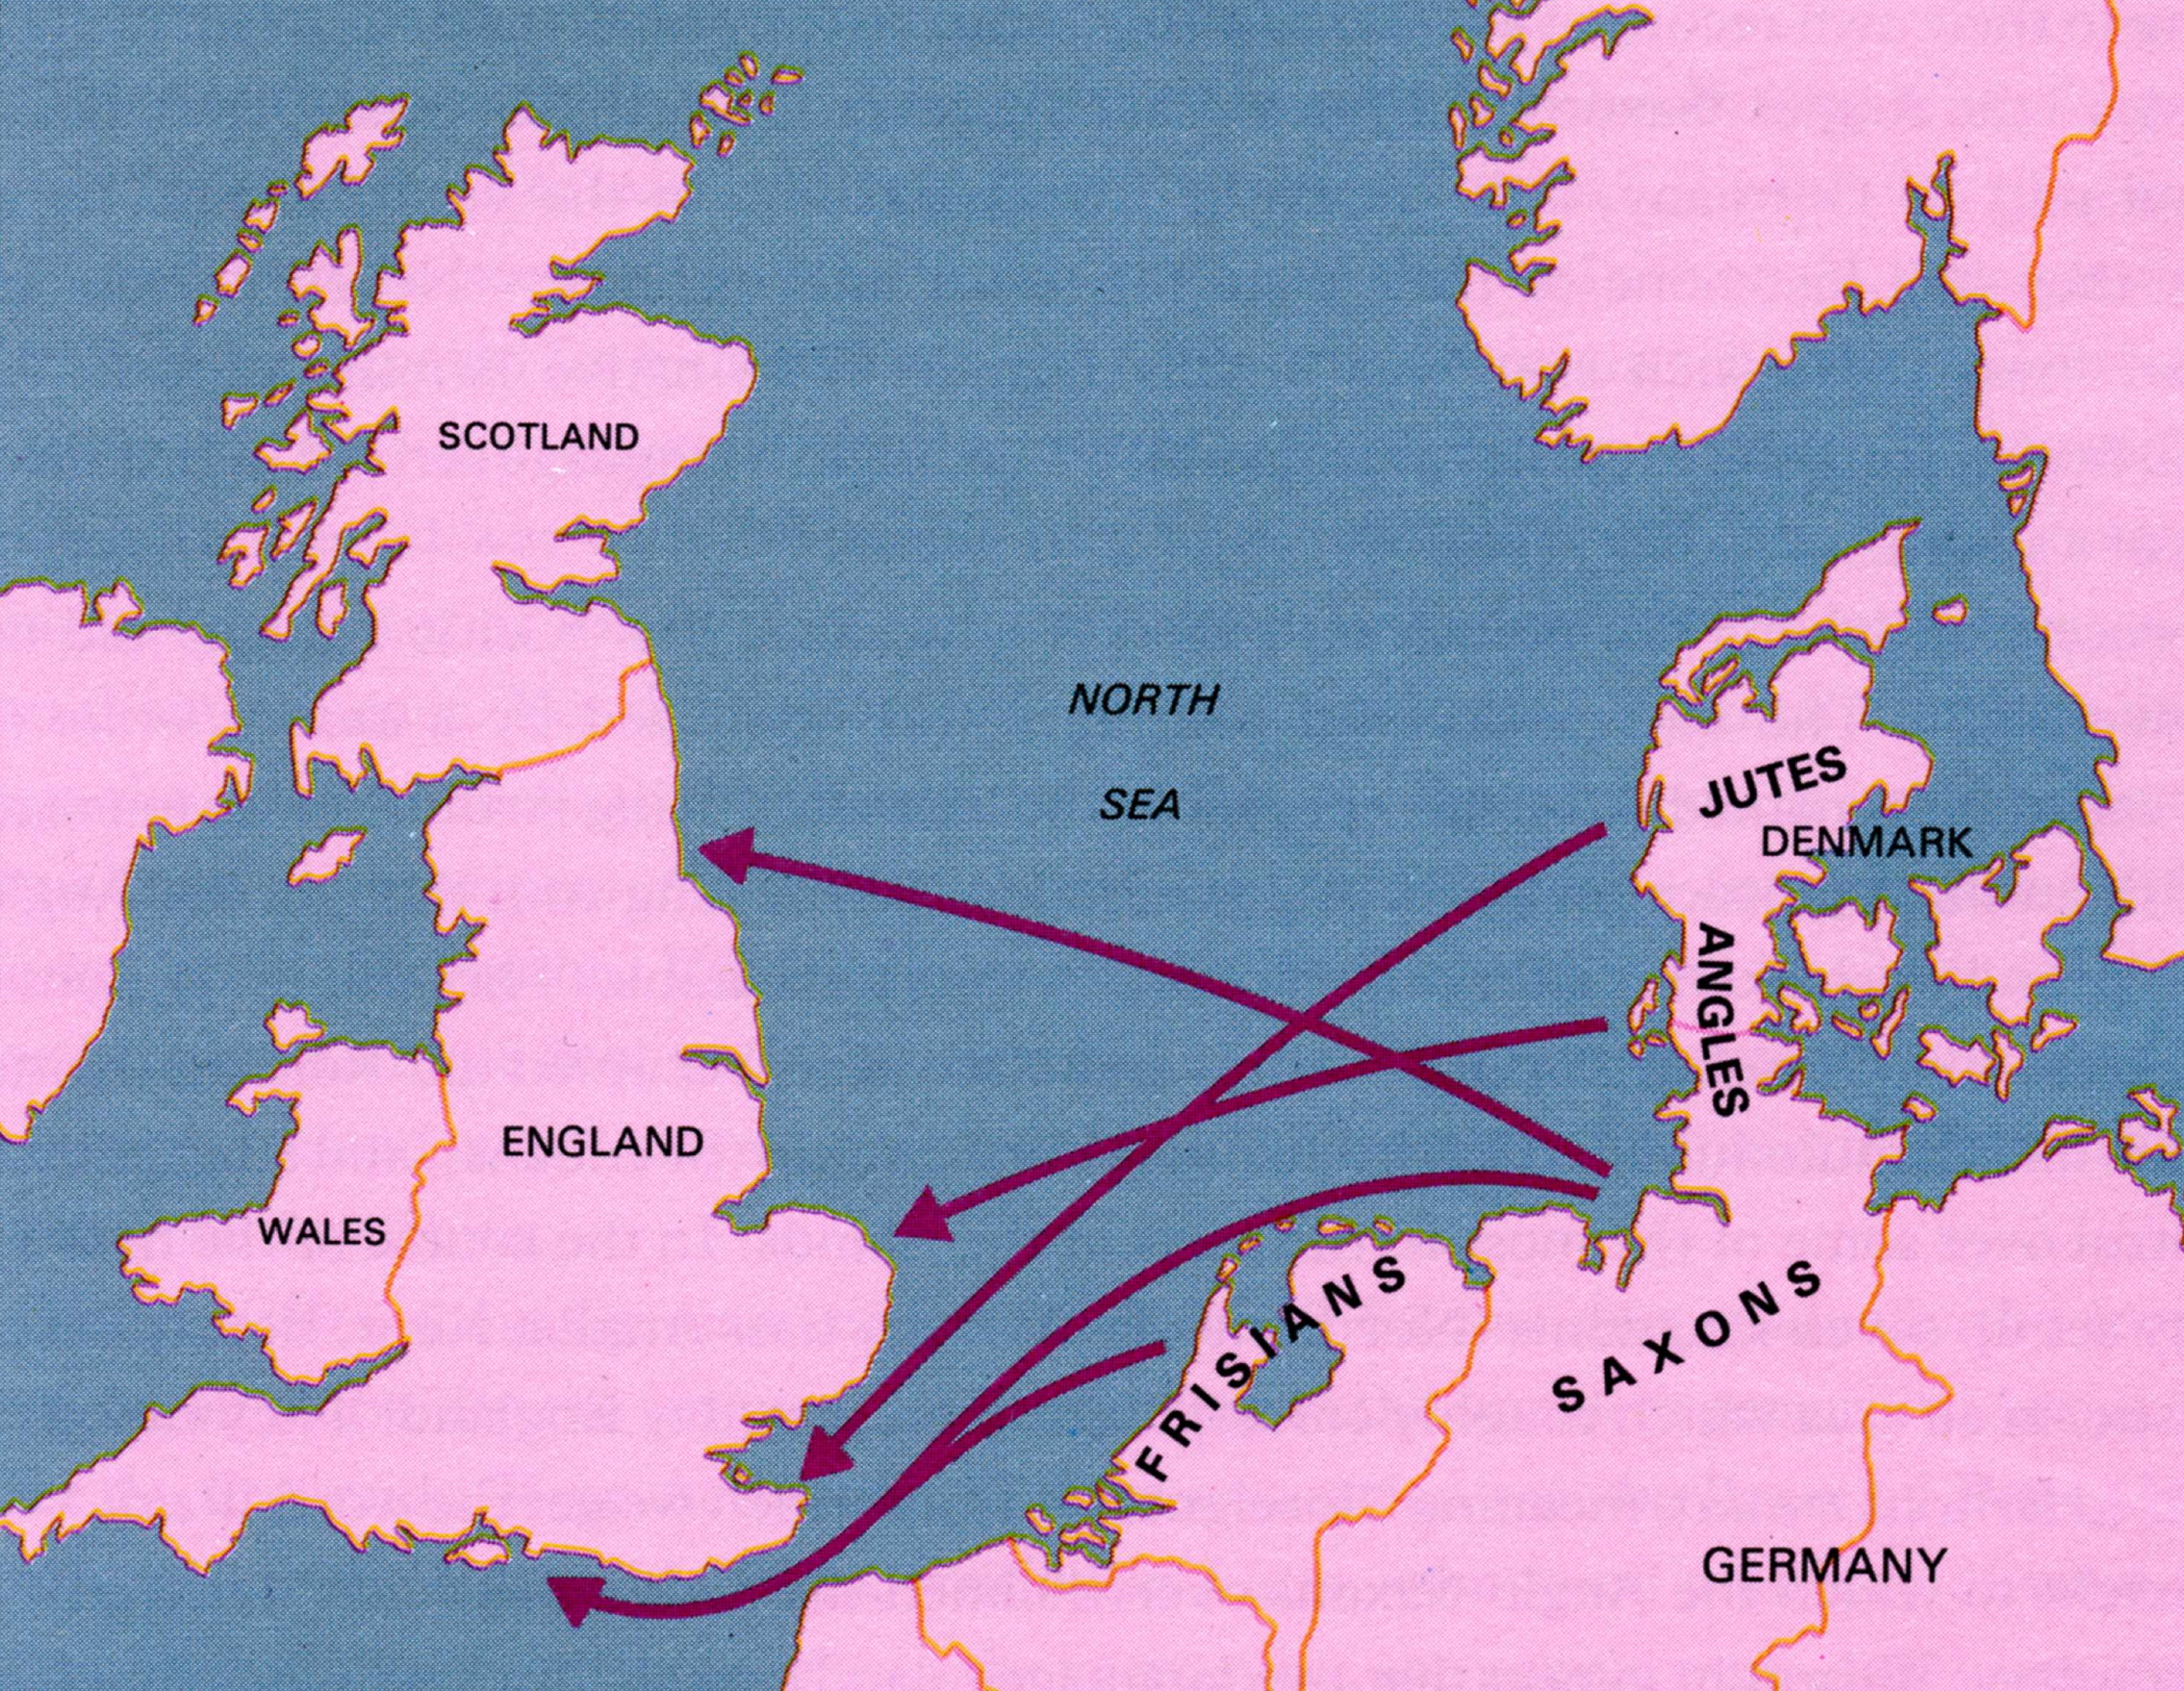 Indo-European migration into Britain